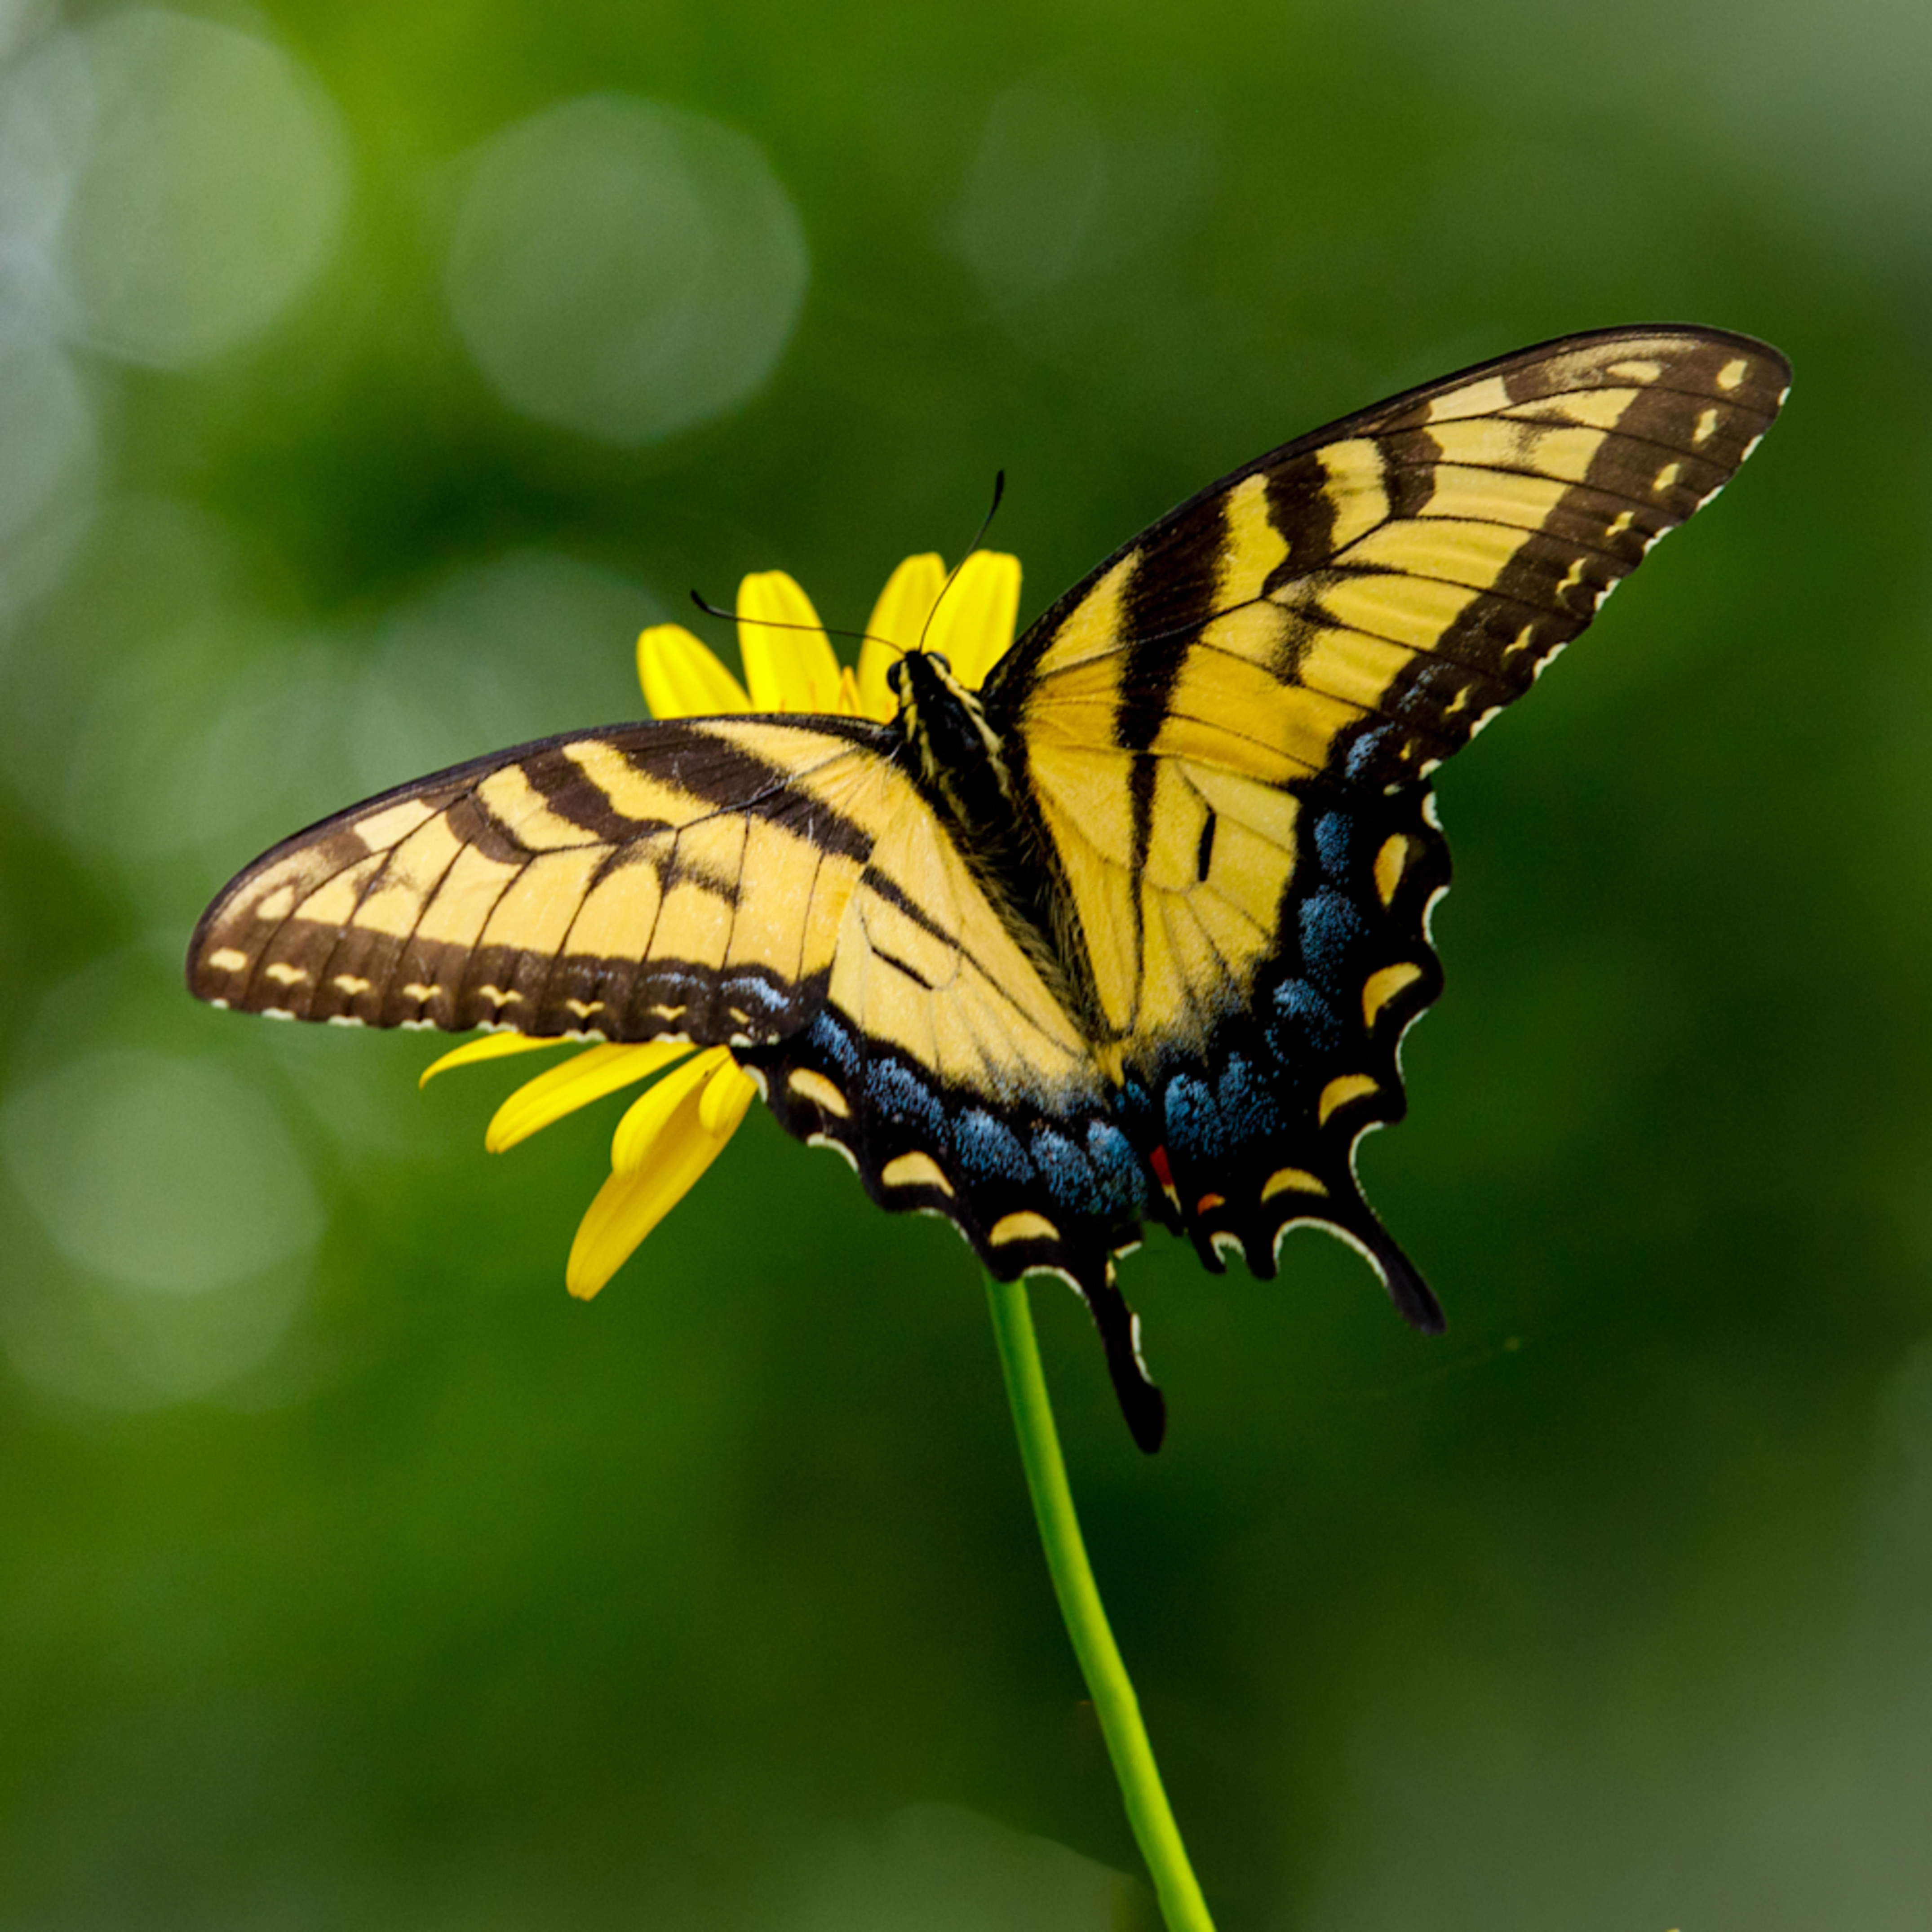 Tiger swallowtail wings spread   square crop 1 of 1 hm3ppr